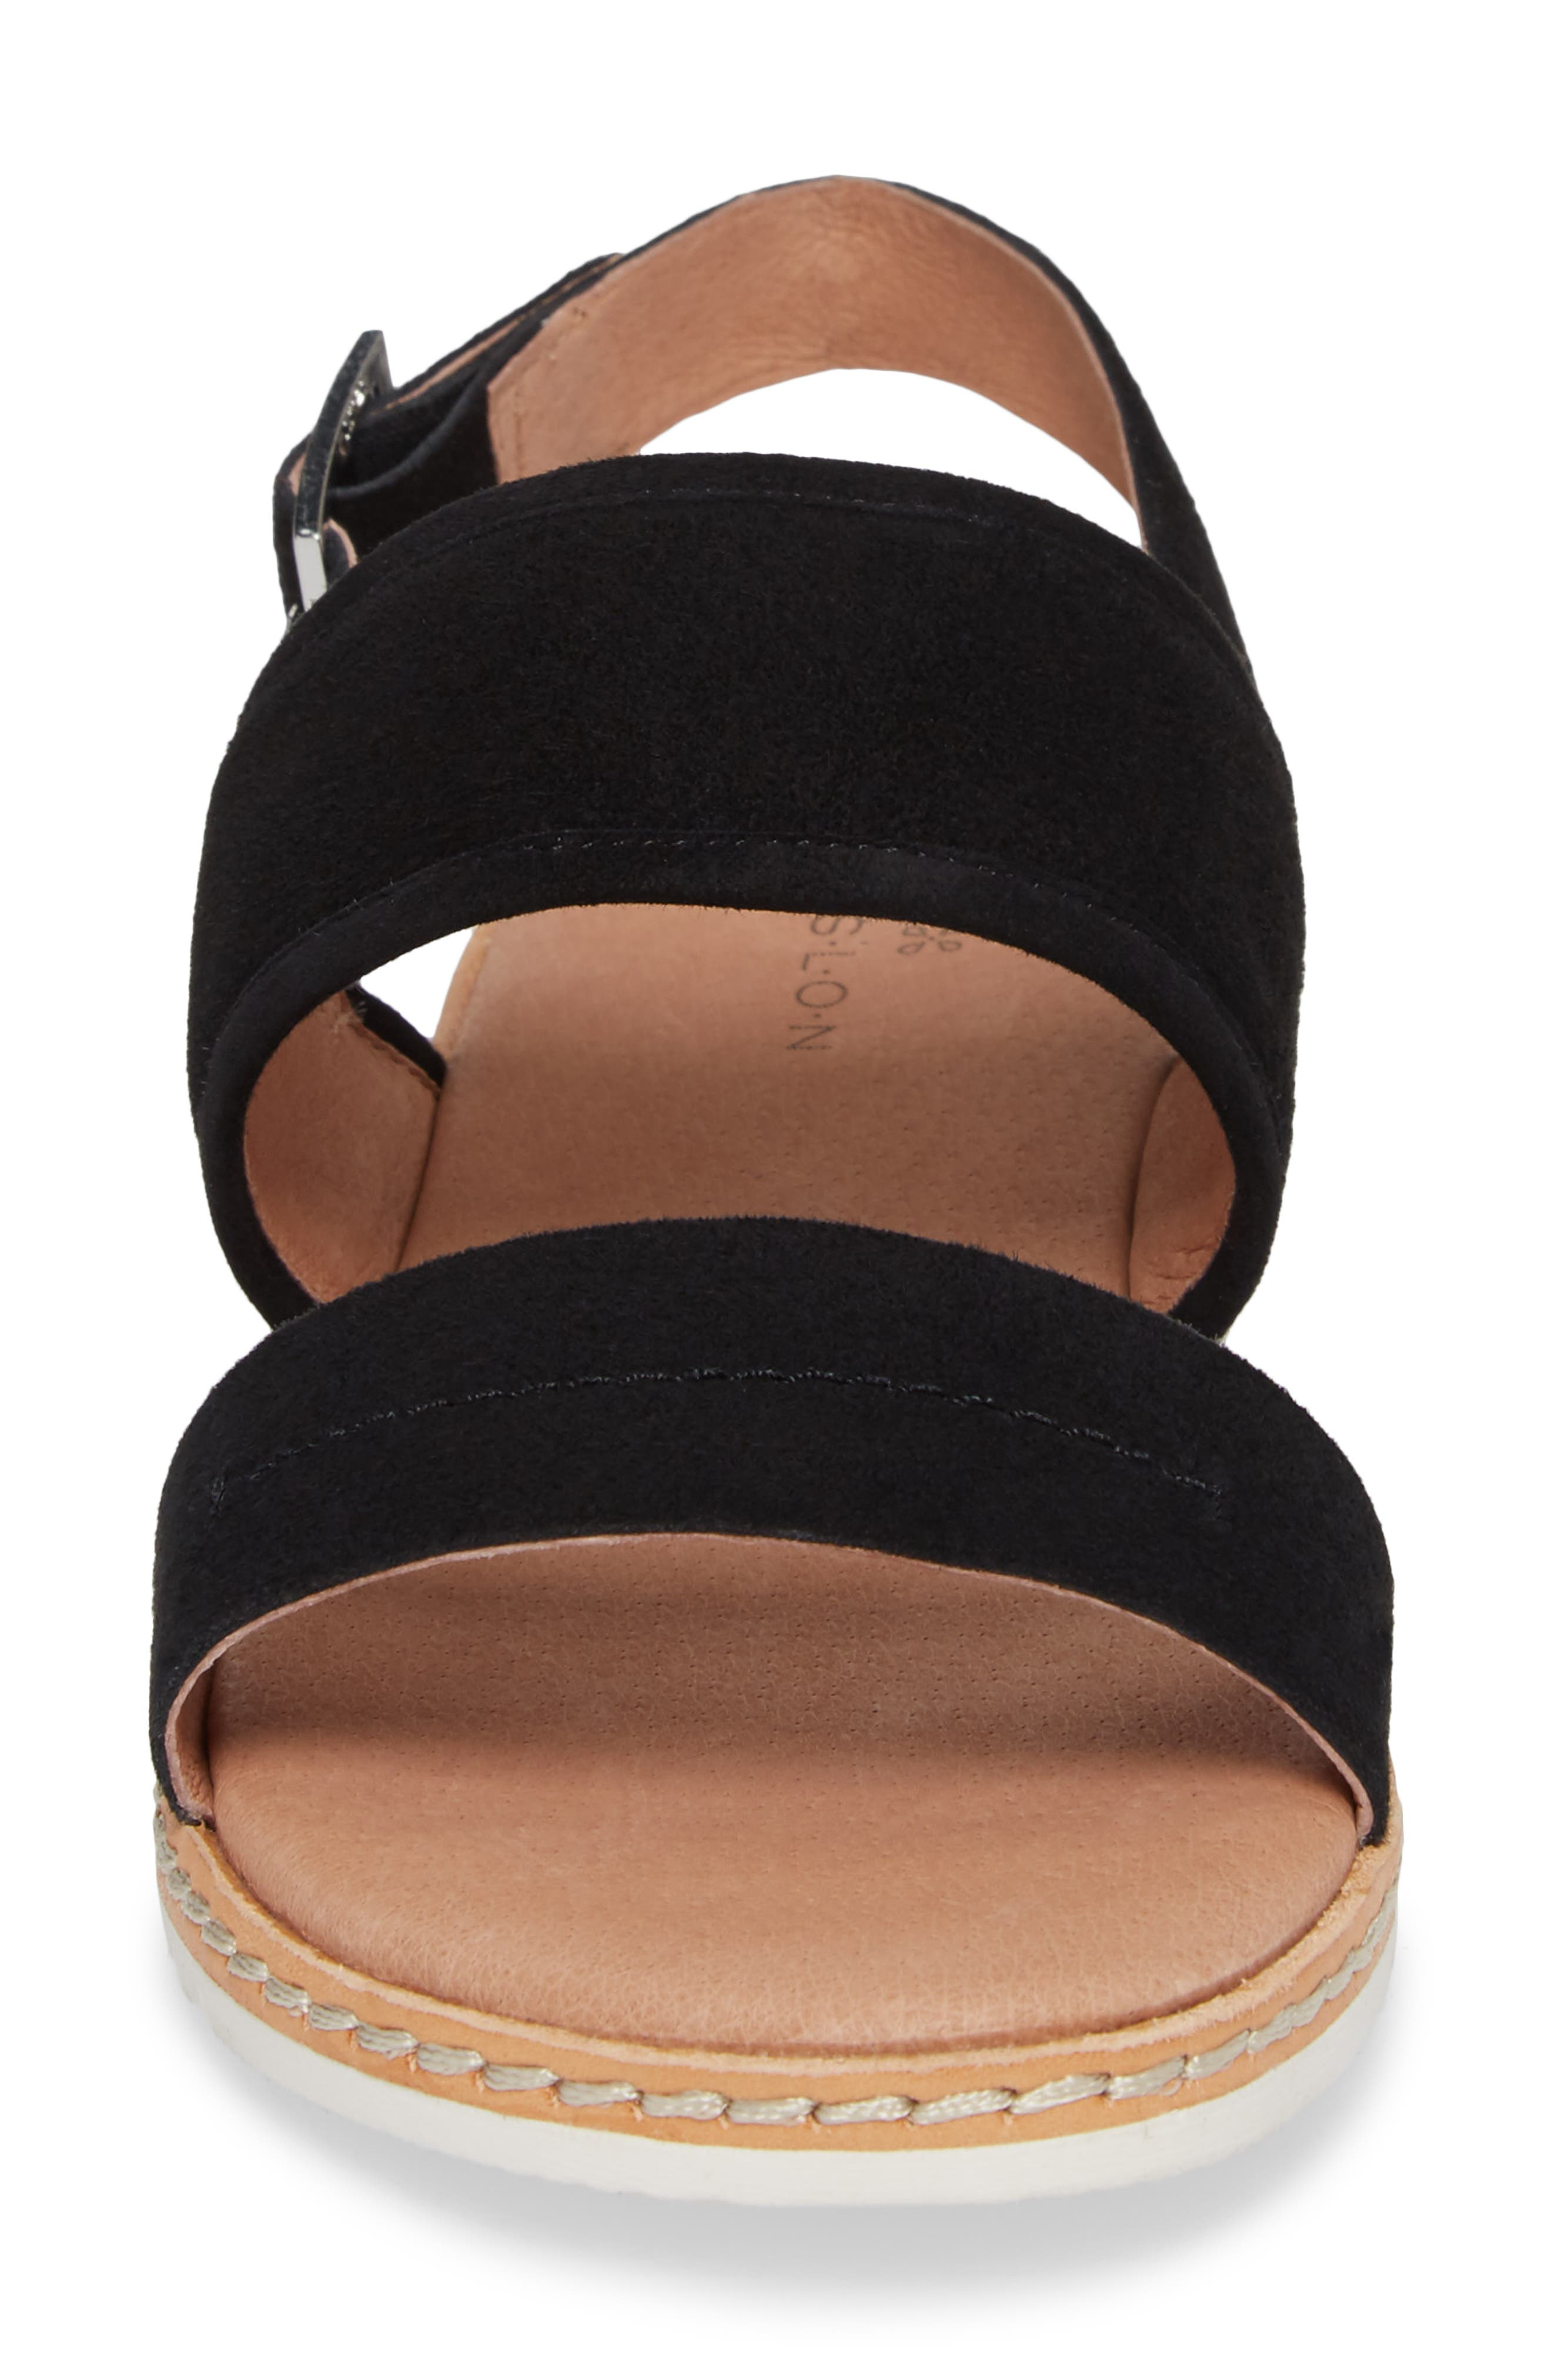 Claire Slingback Sandal,                             Alternate thumbnail 4, color,                             001